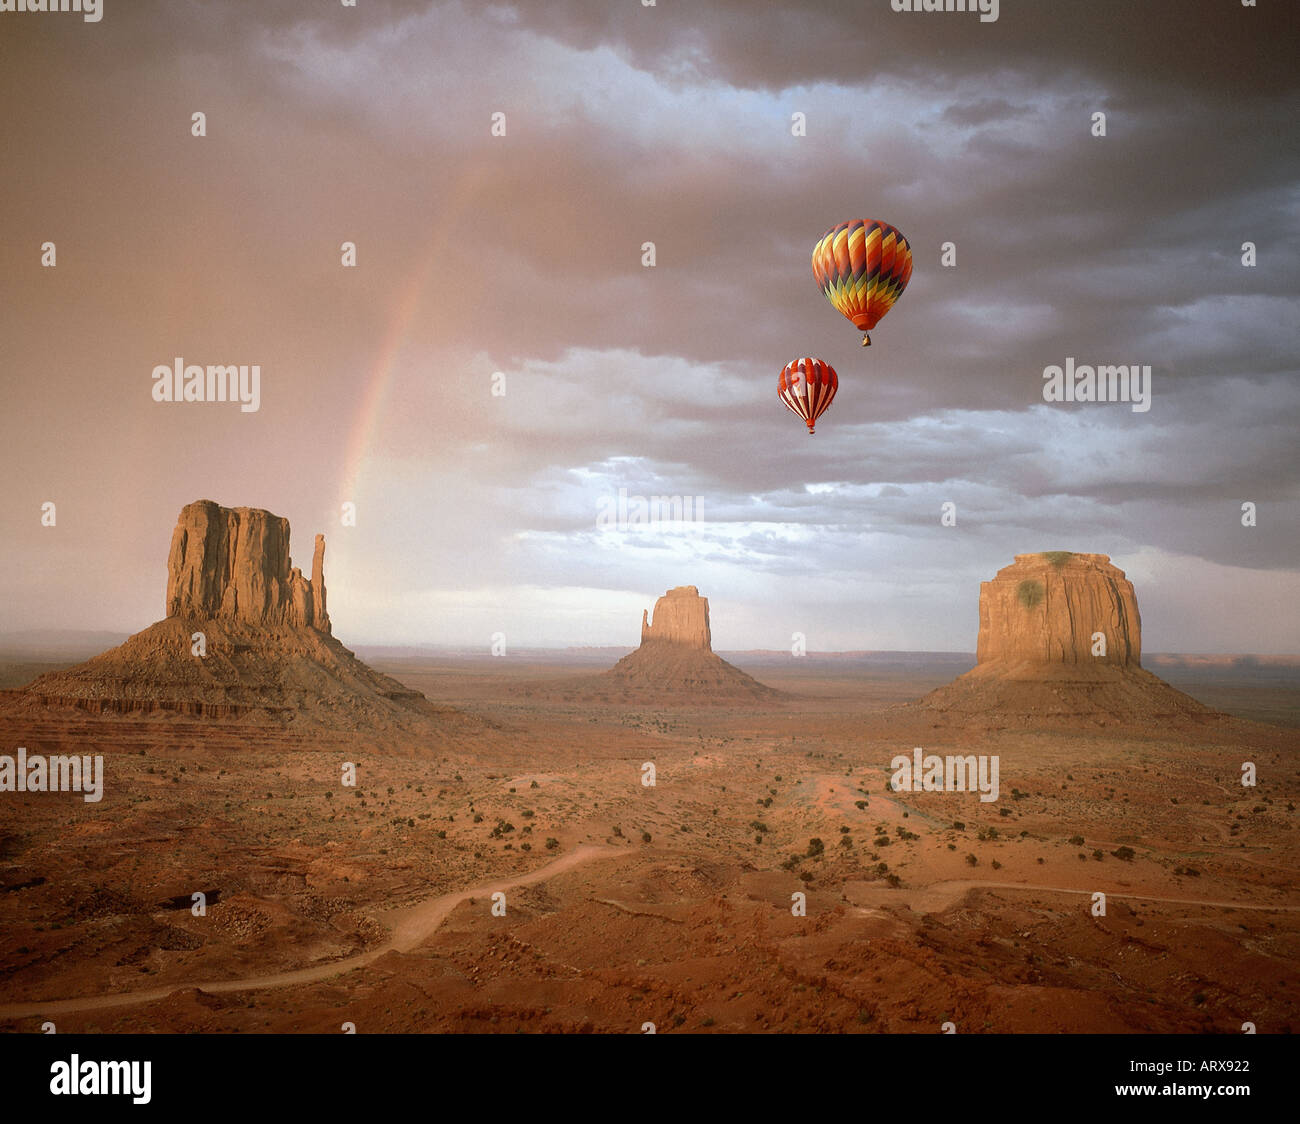 USA - ARIZONA: Monument Valley Navajo Tribal Park Stockbild